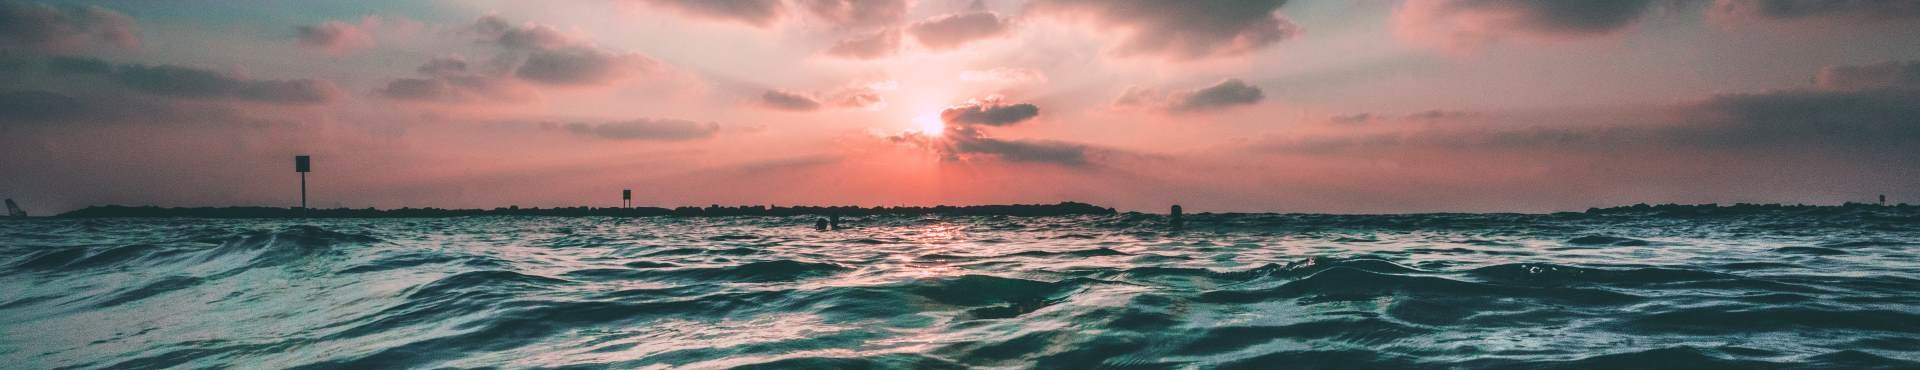 Sunset over the ocean | Shine Lawyers